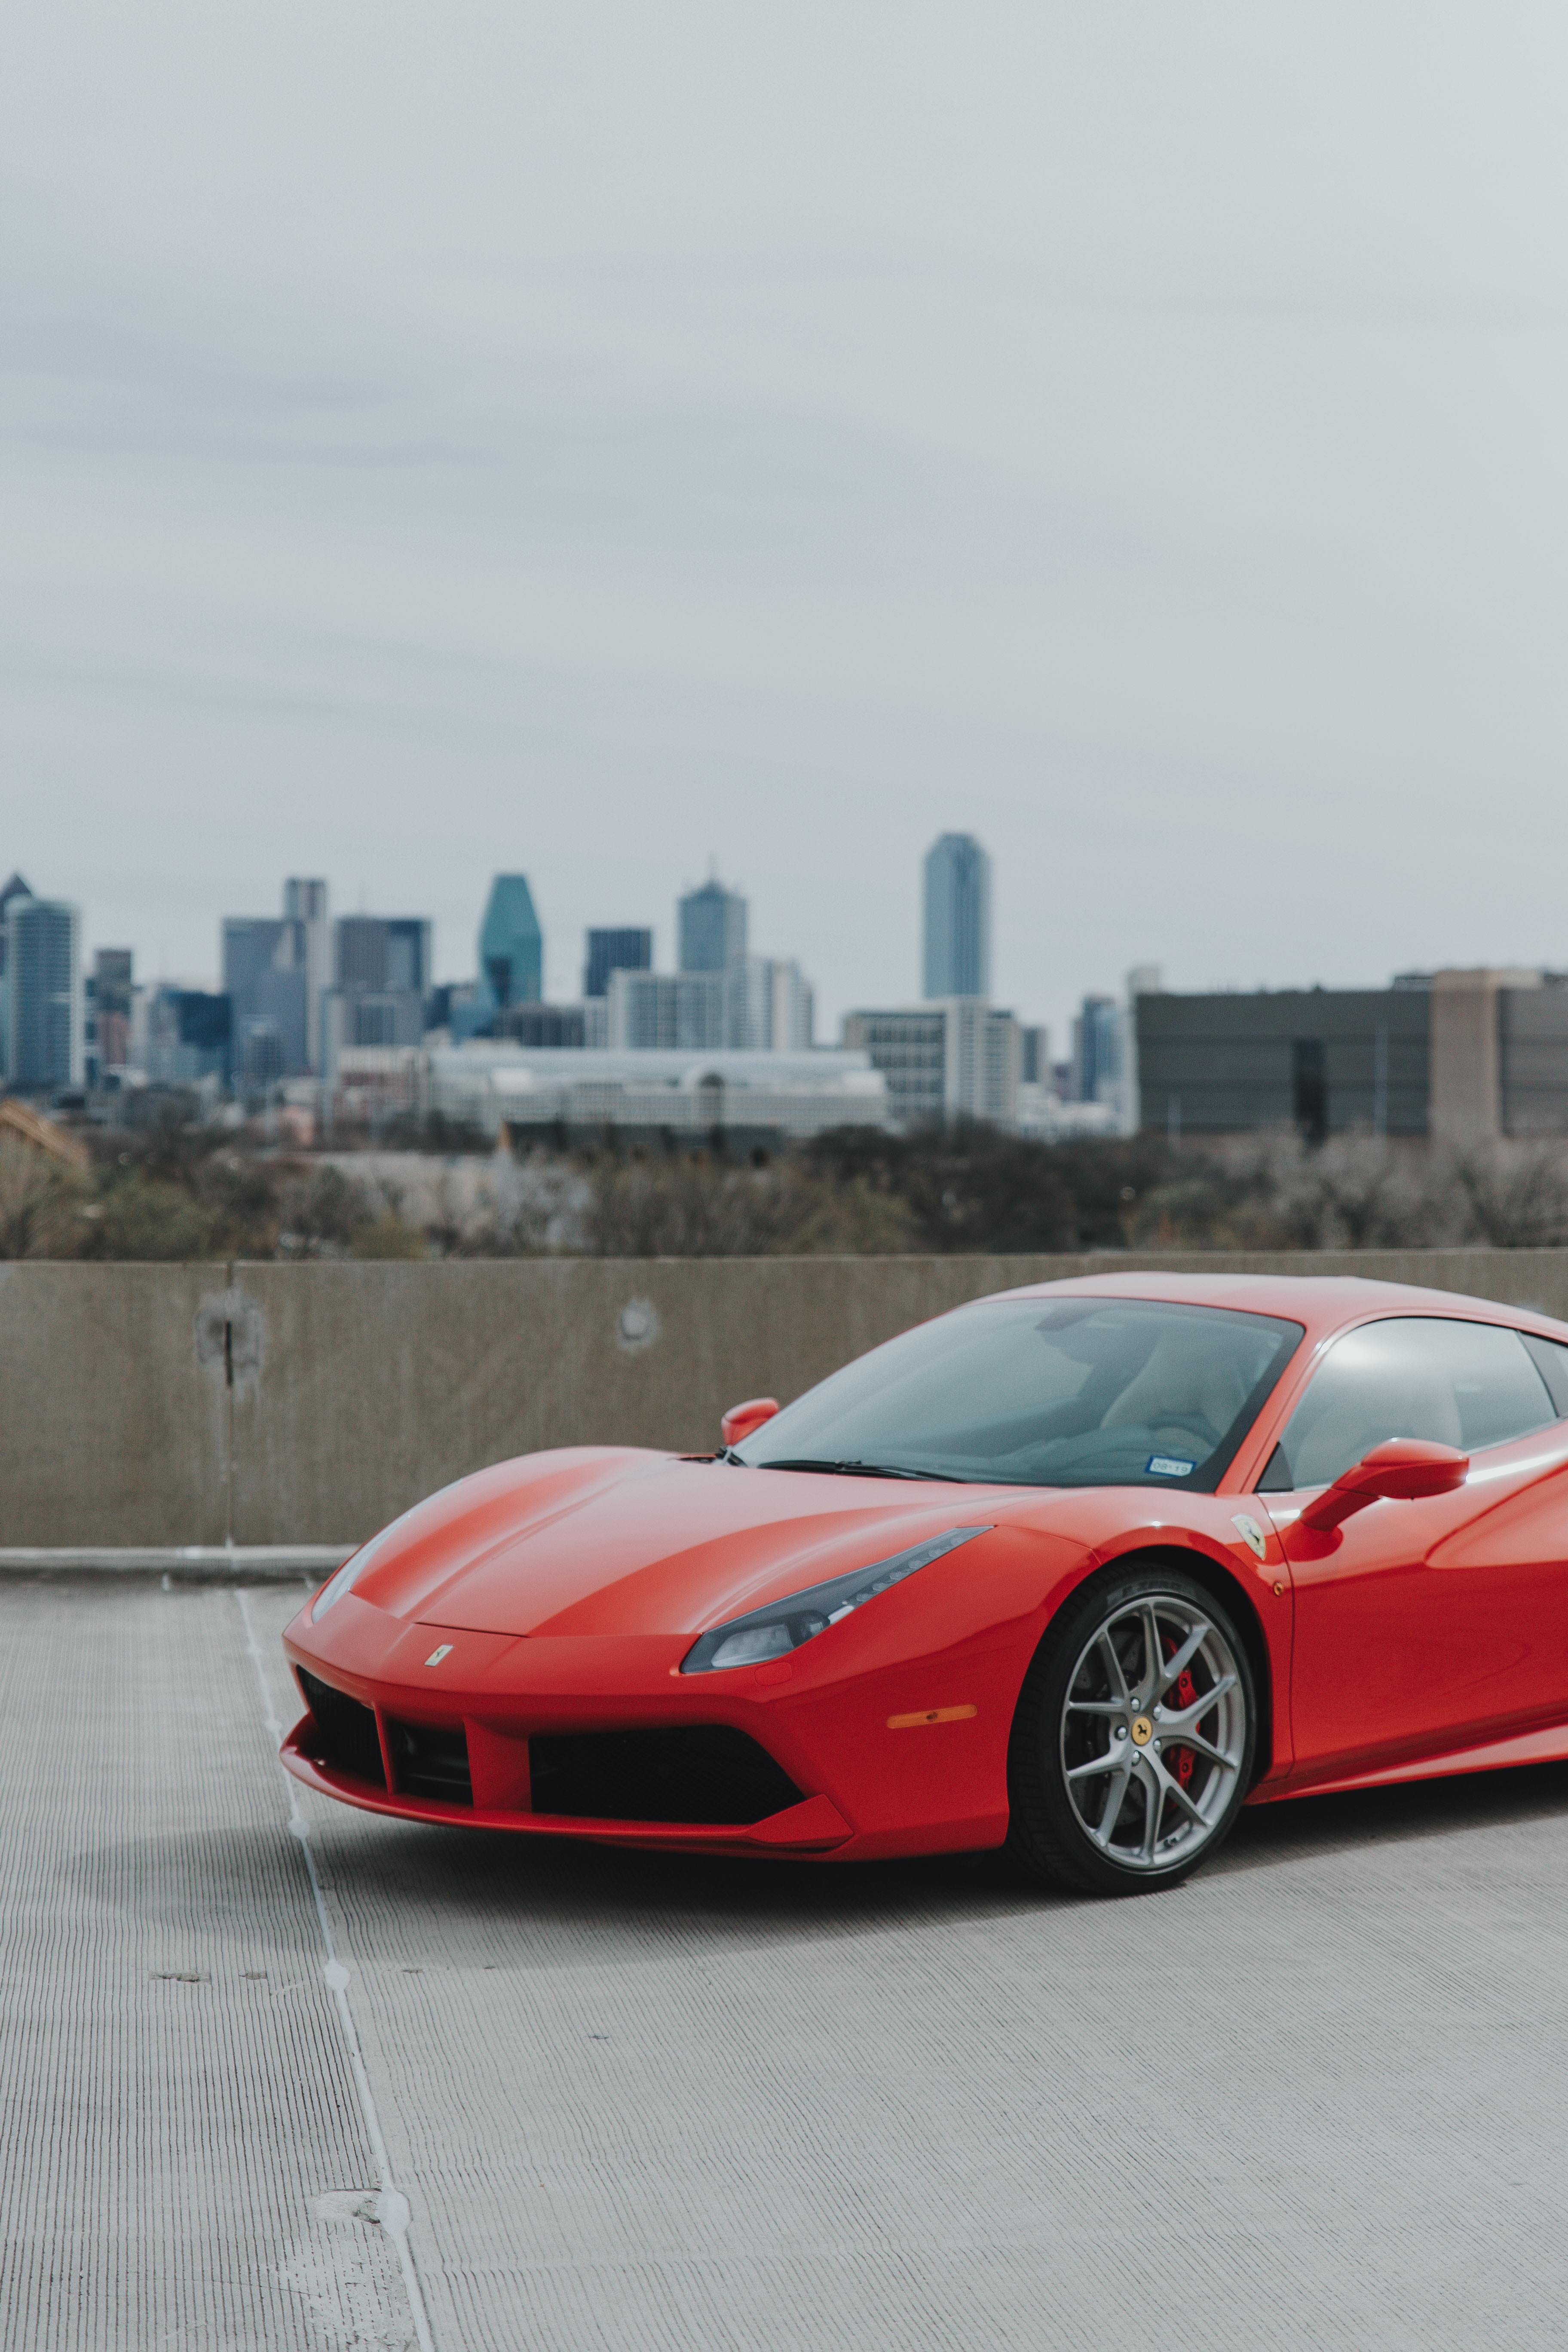 76883 download wallpaper Cars, Ferrari 458, Ferrari, Sports Car, Sports, Side View screensavers and pictures for free